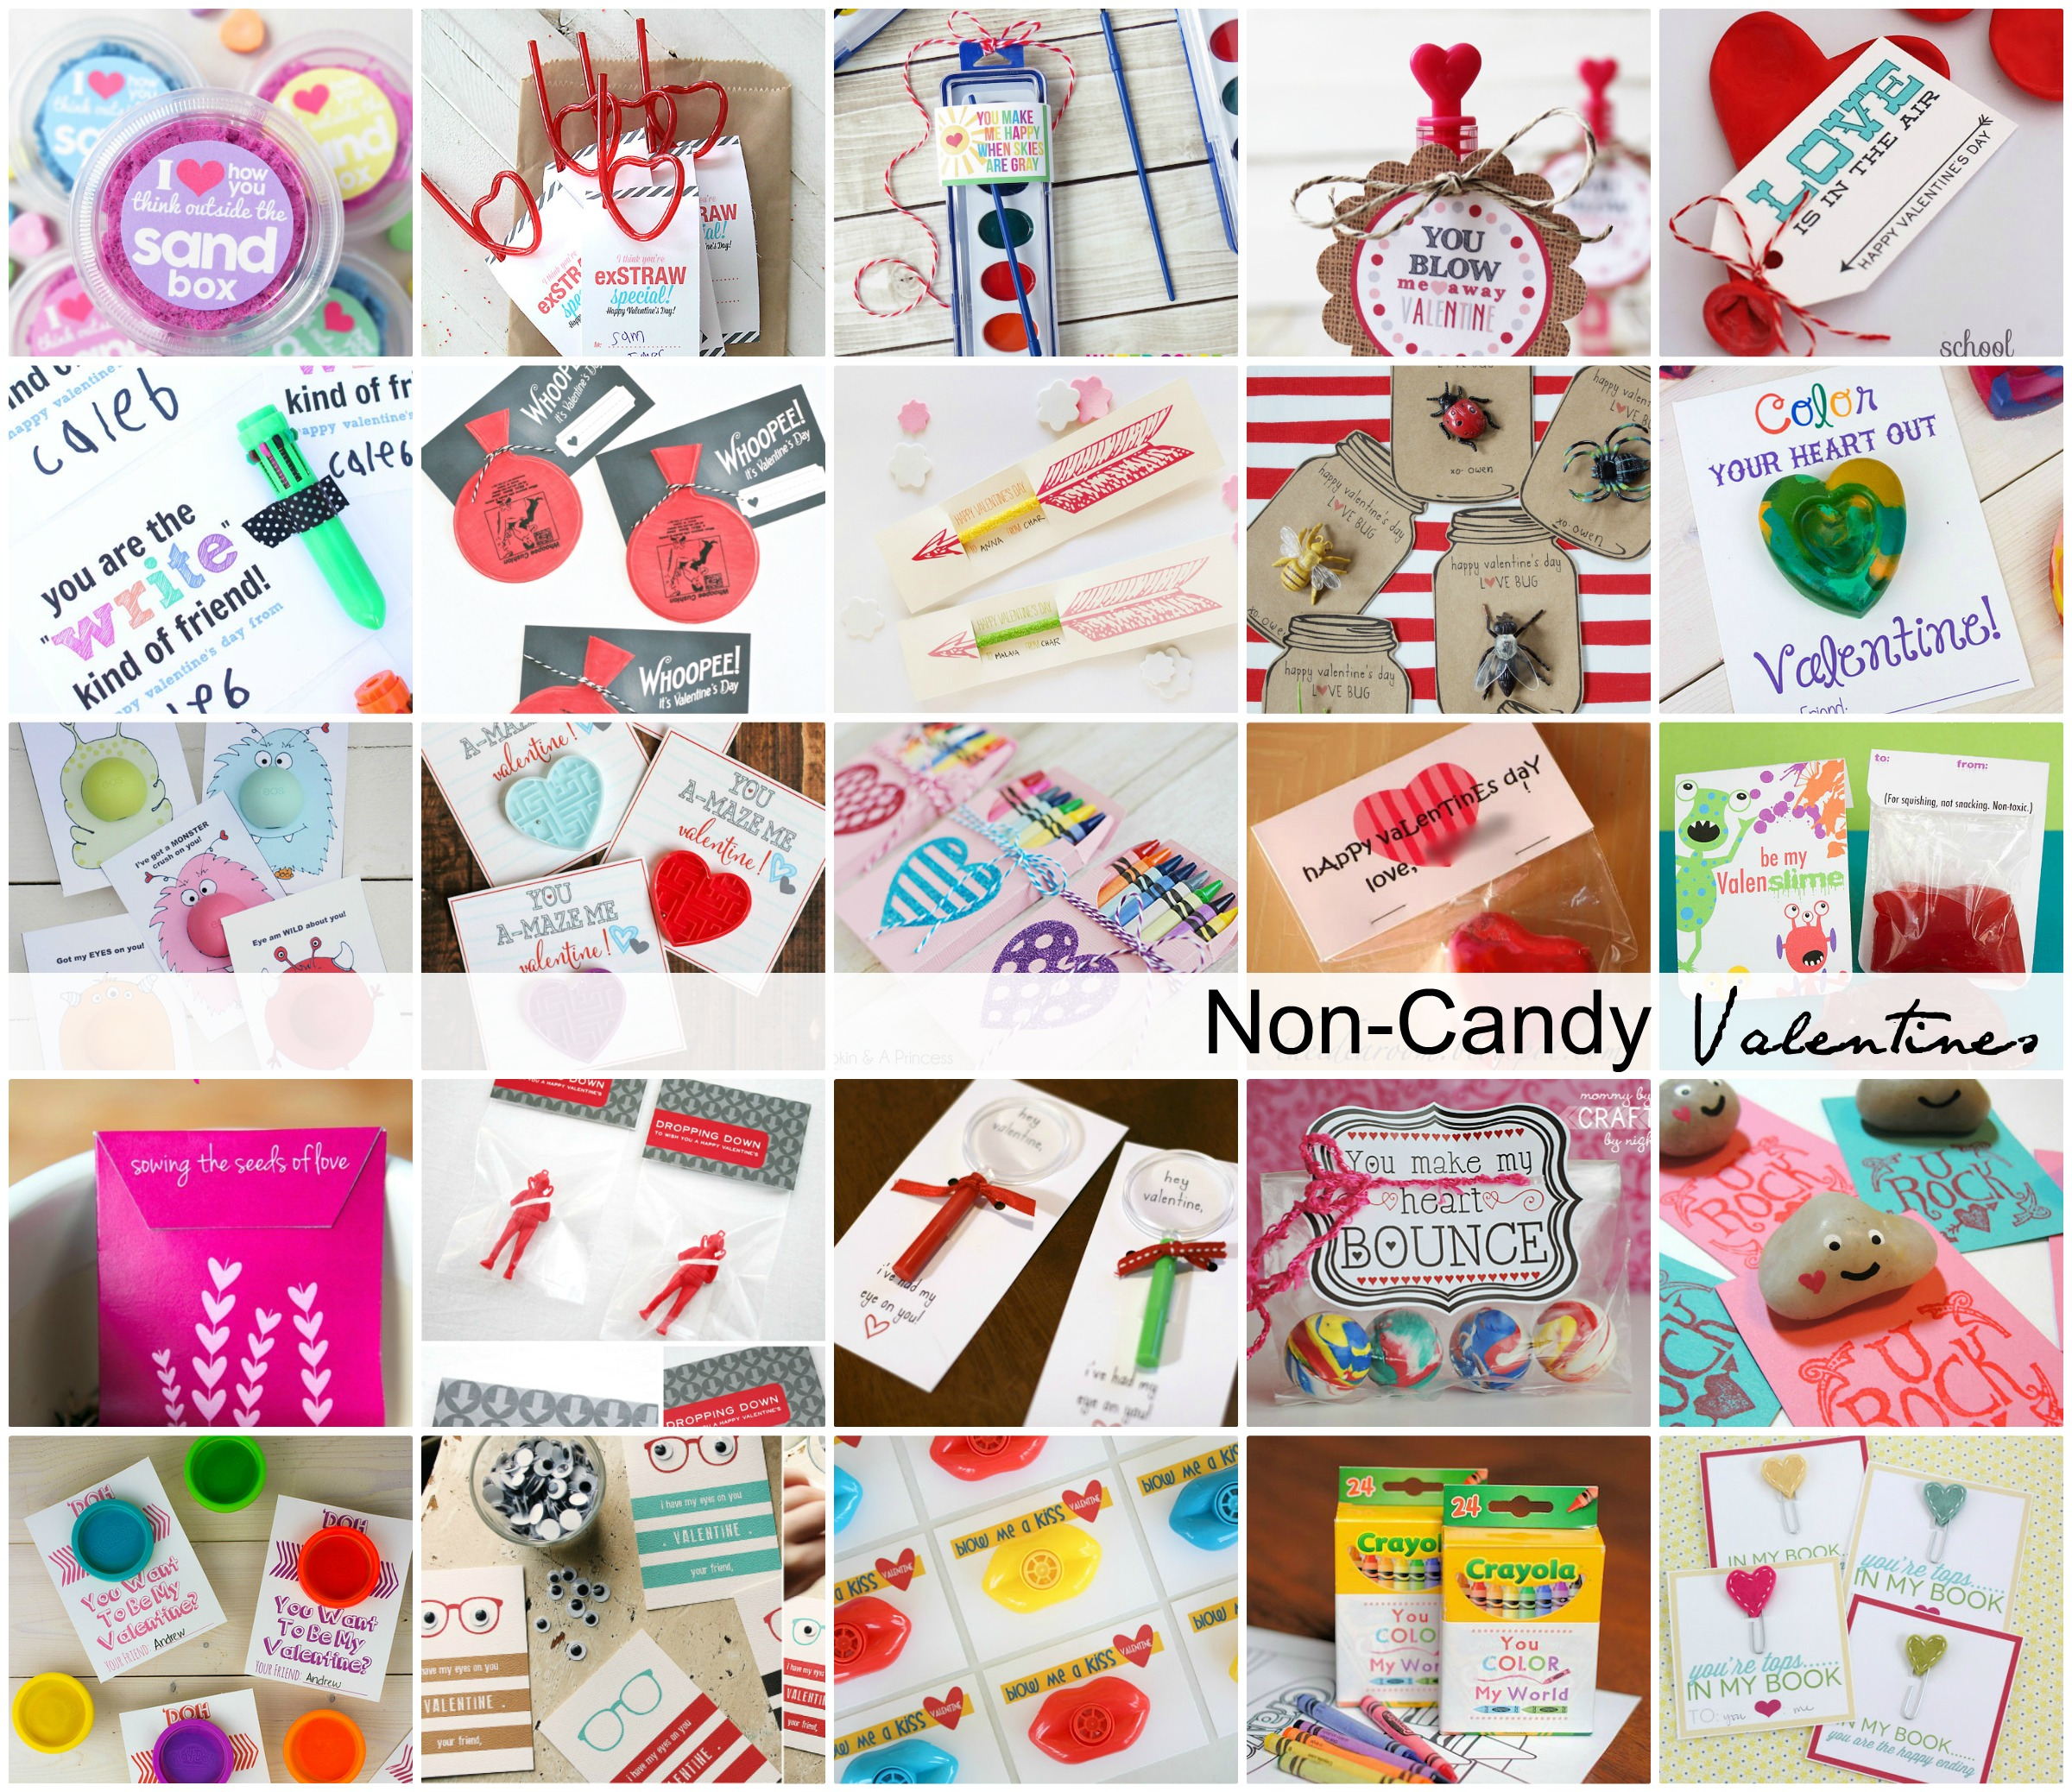 Valentine's Day Classroom Box Ideas - The Idea Room